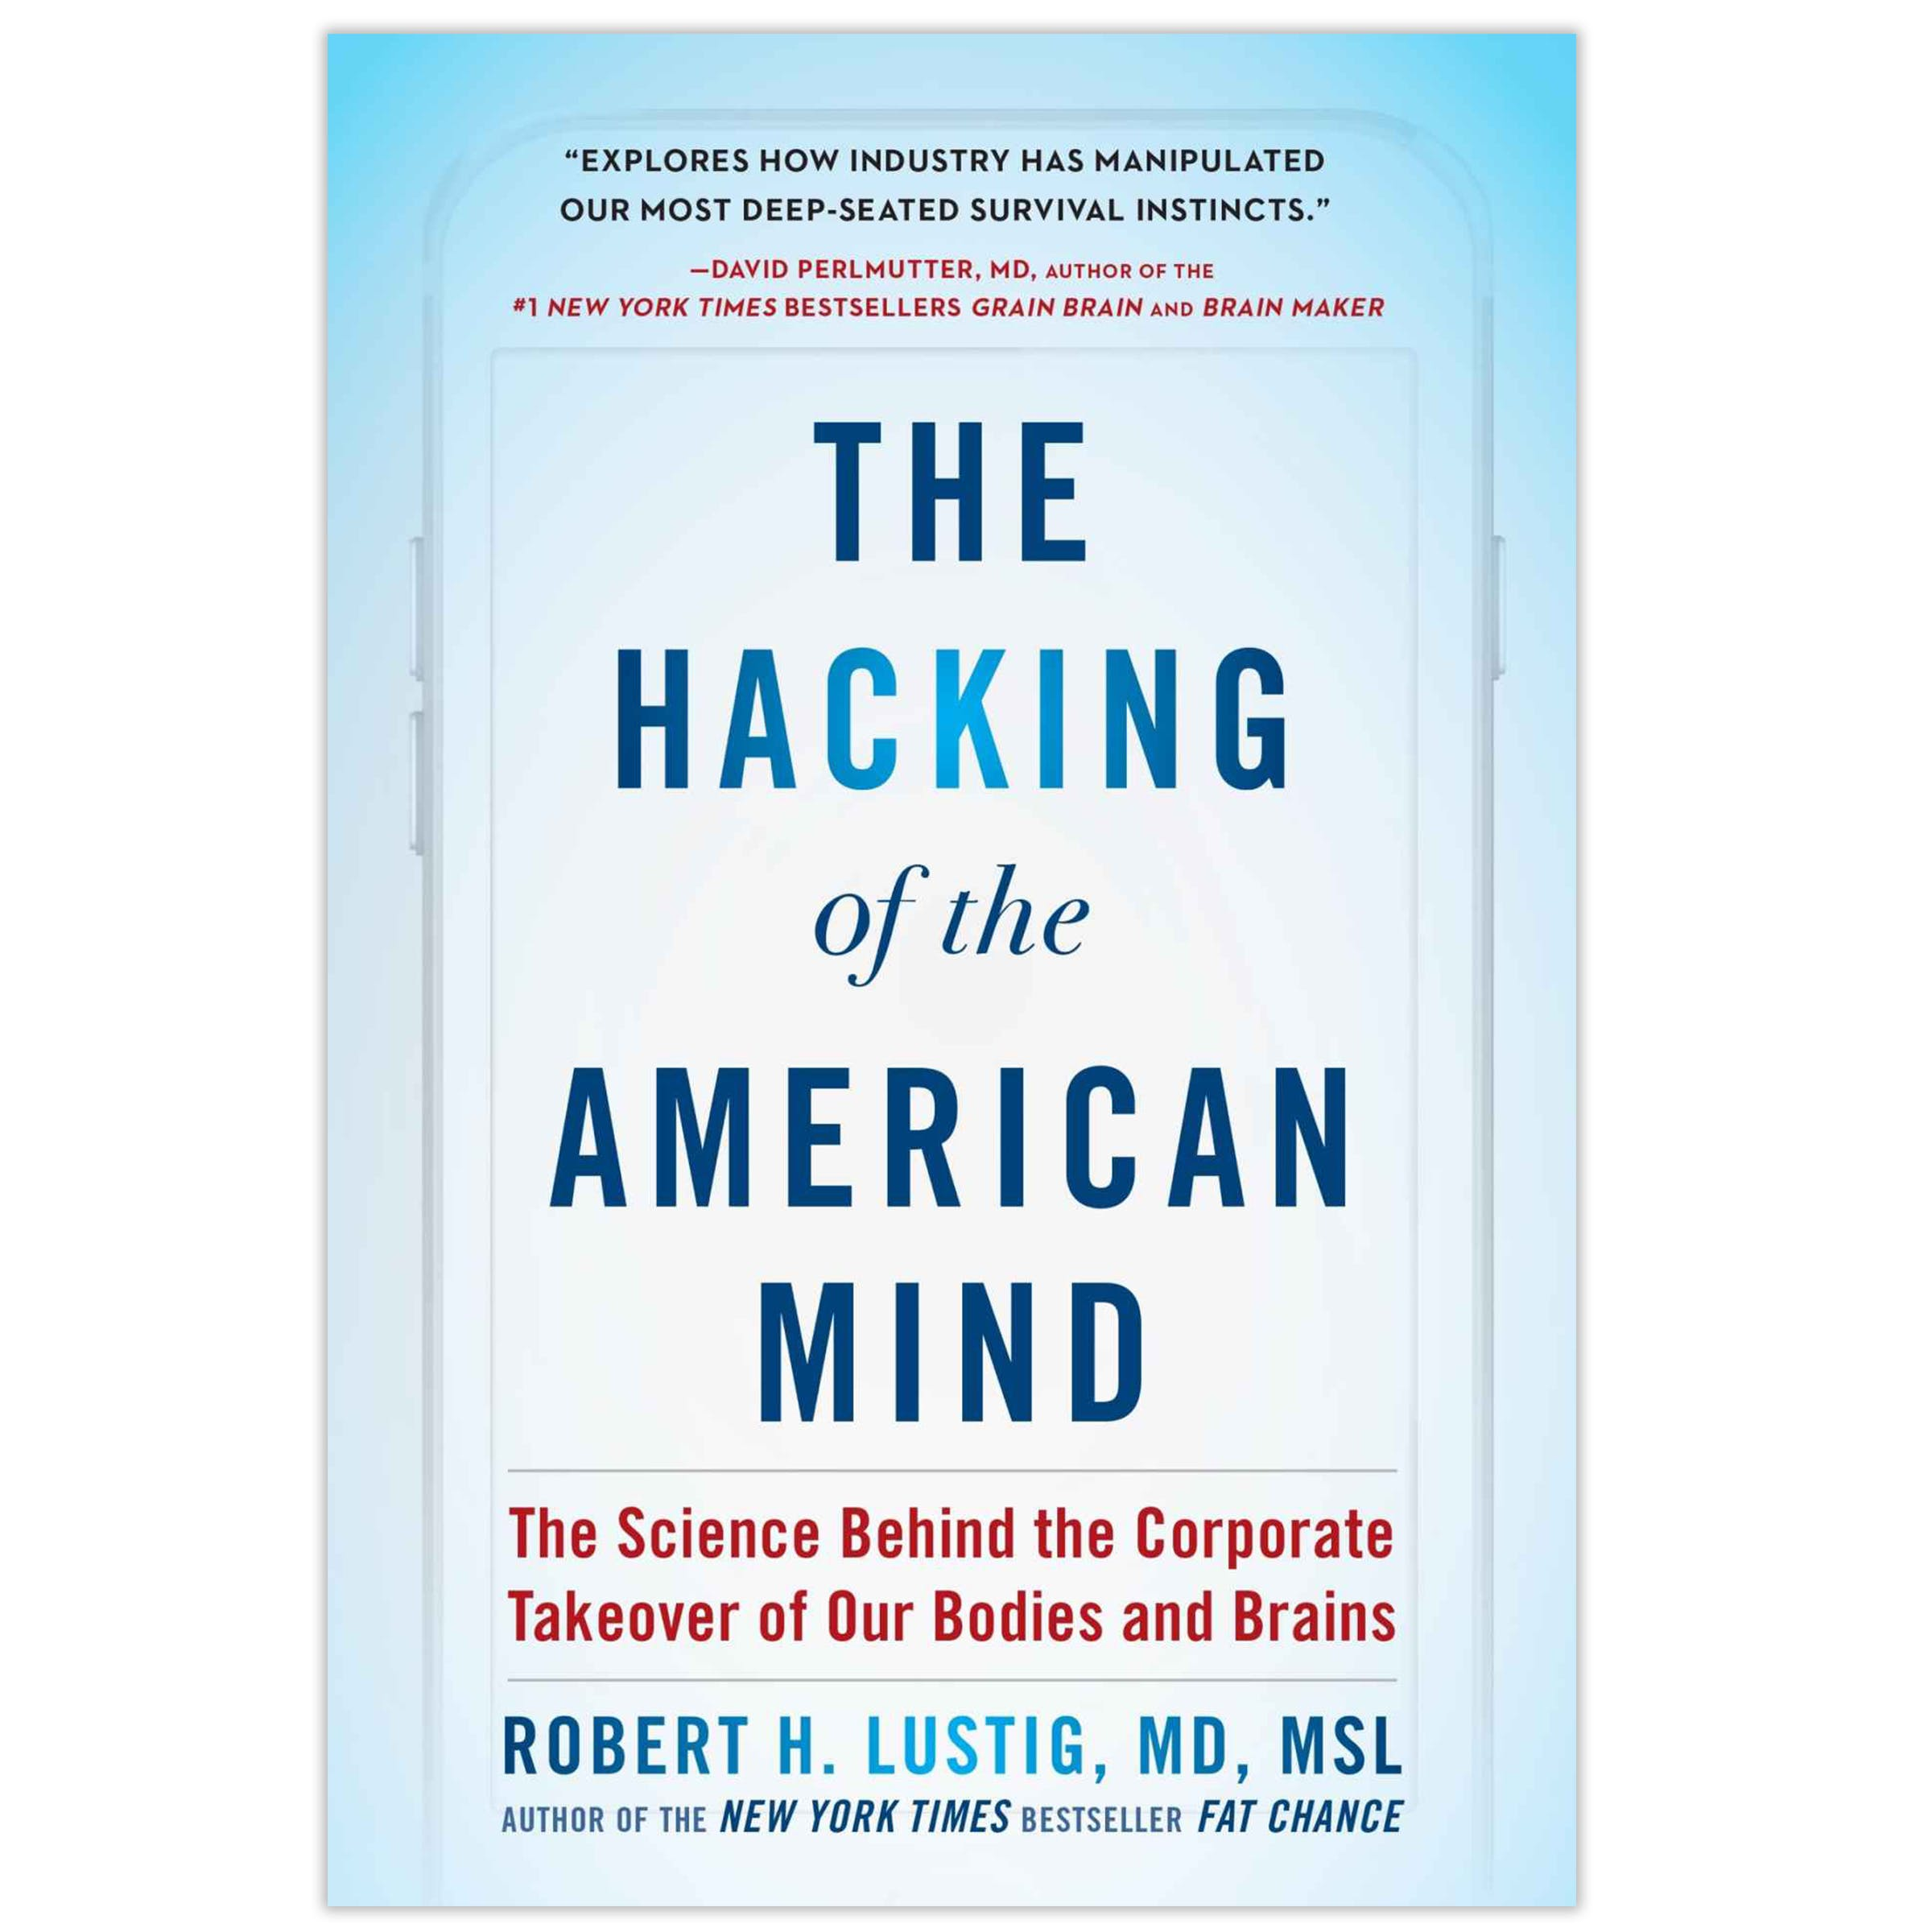 the-hacking-of-the-american-mind